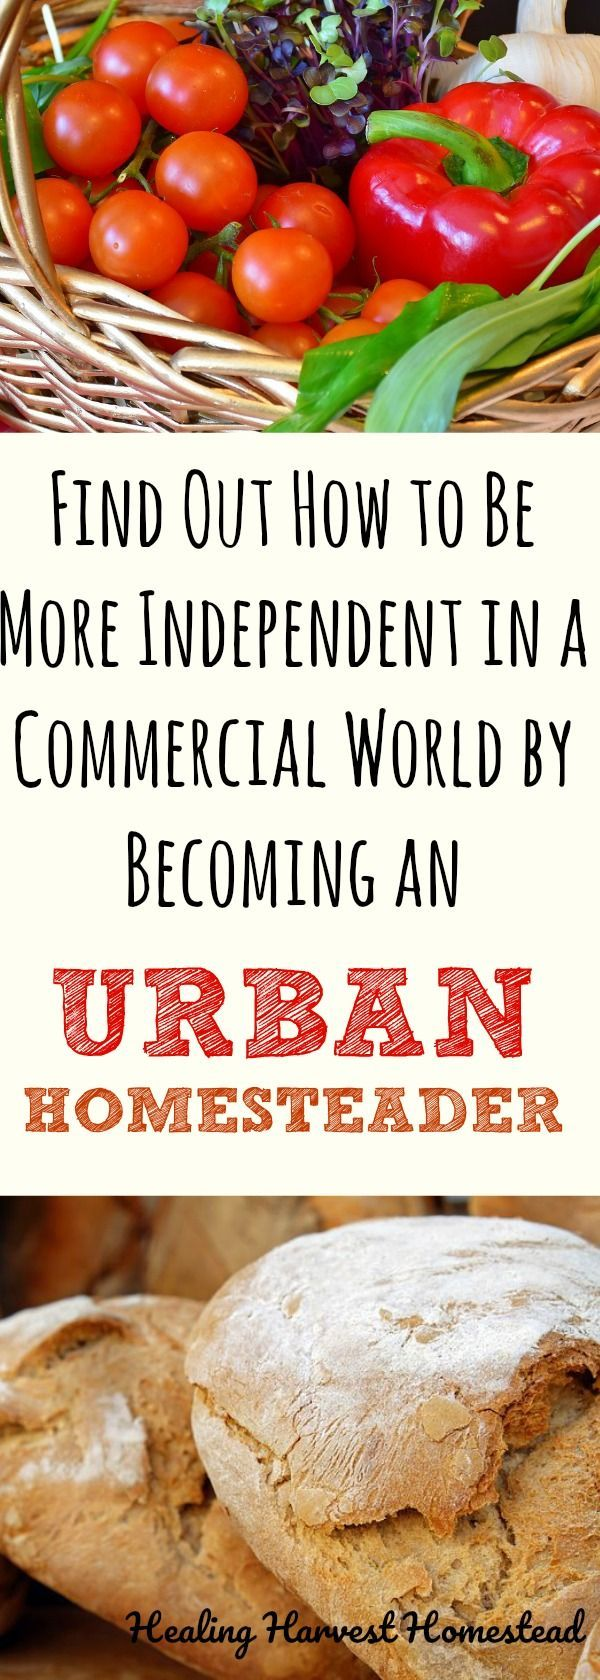 Urban Homesteading: Is it Really Possible? (My 5 Truths About Urban Homesteading)